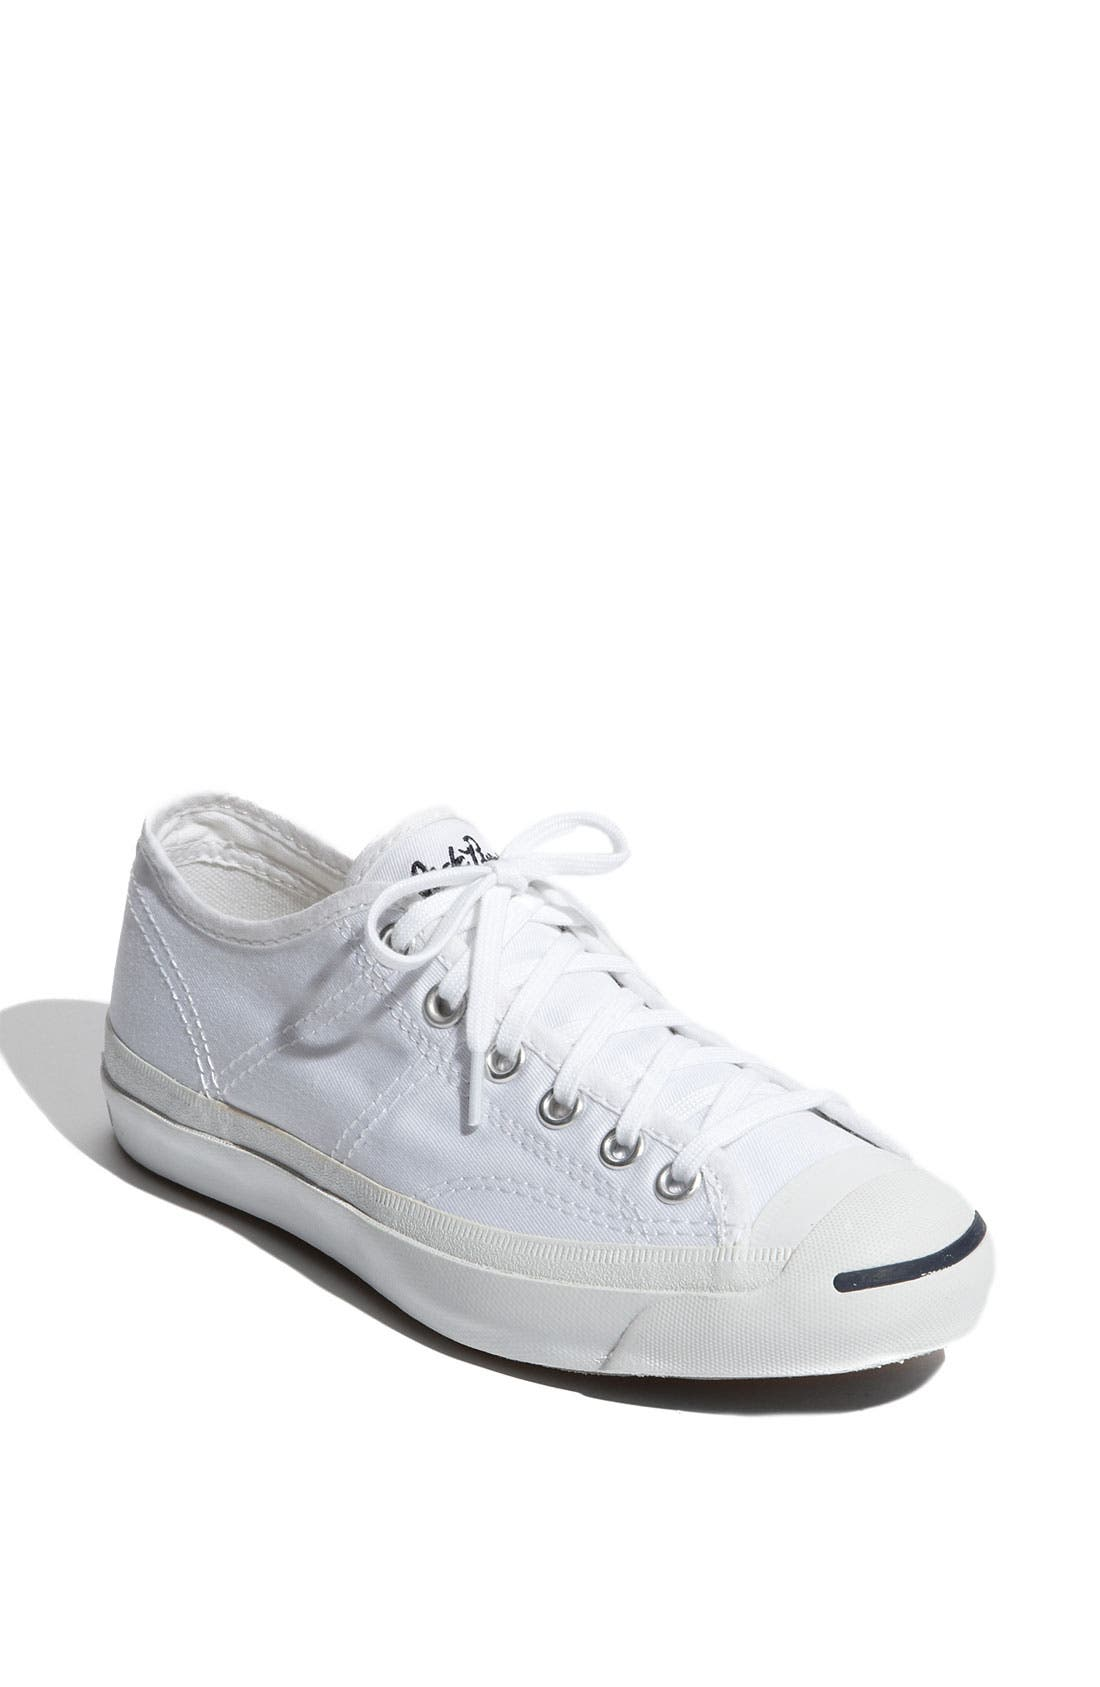 Main Image - Converse 'Jack Purcell - Helen' Sneaker